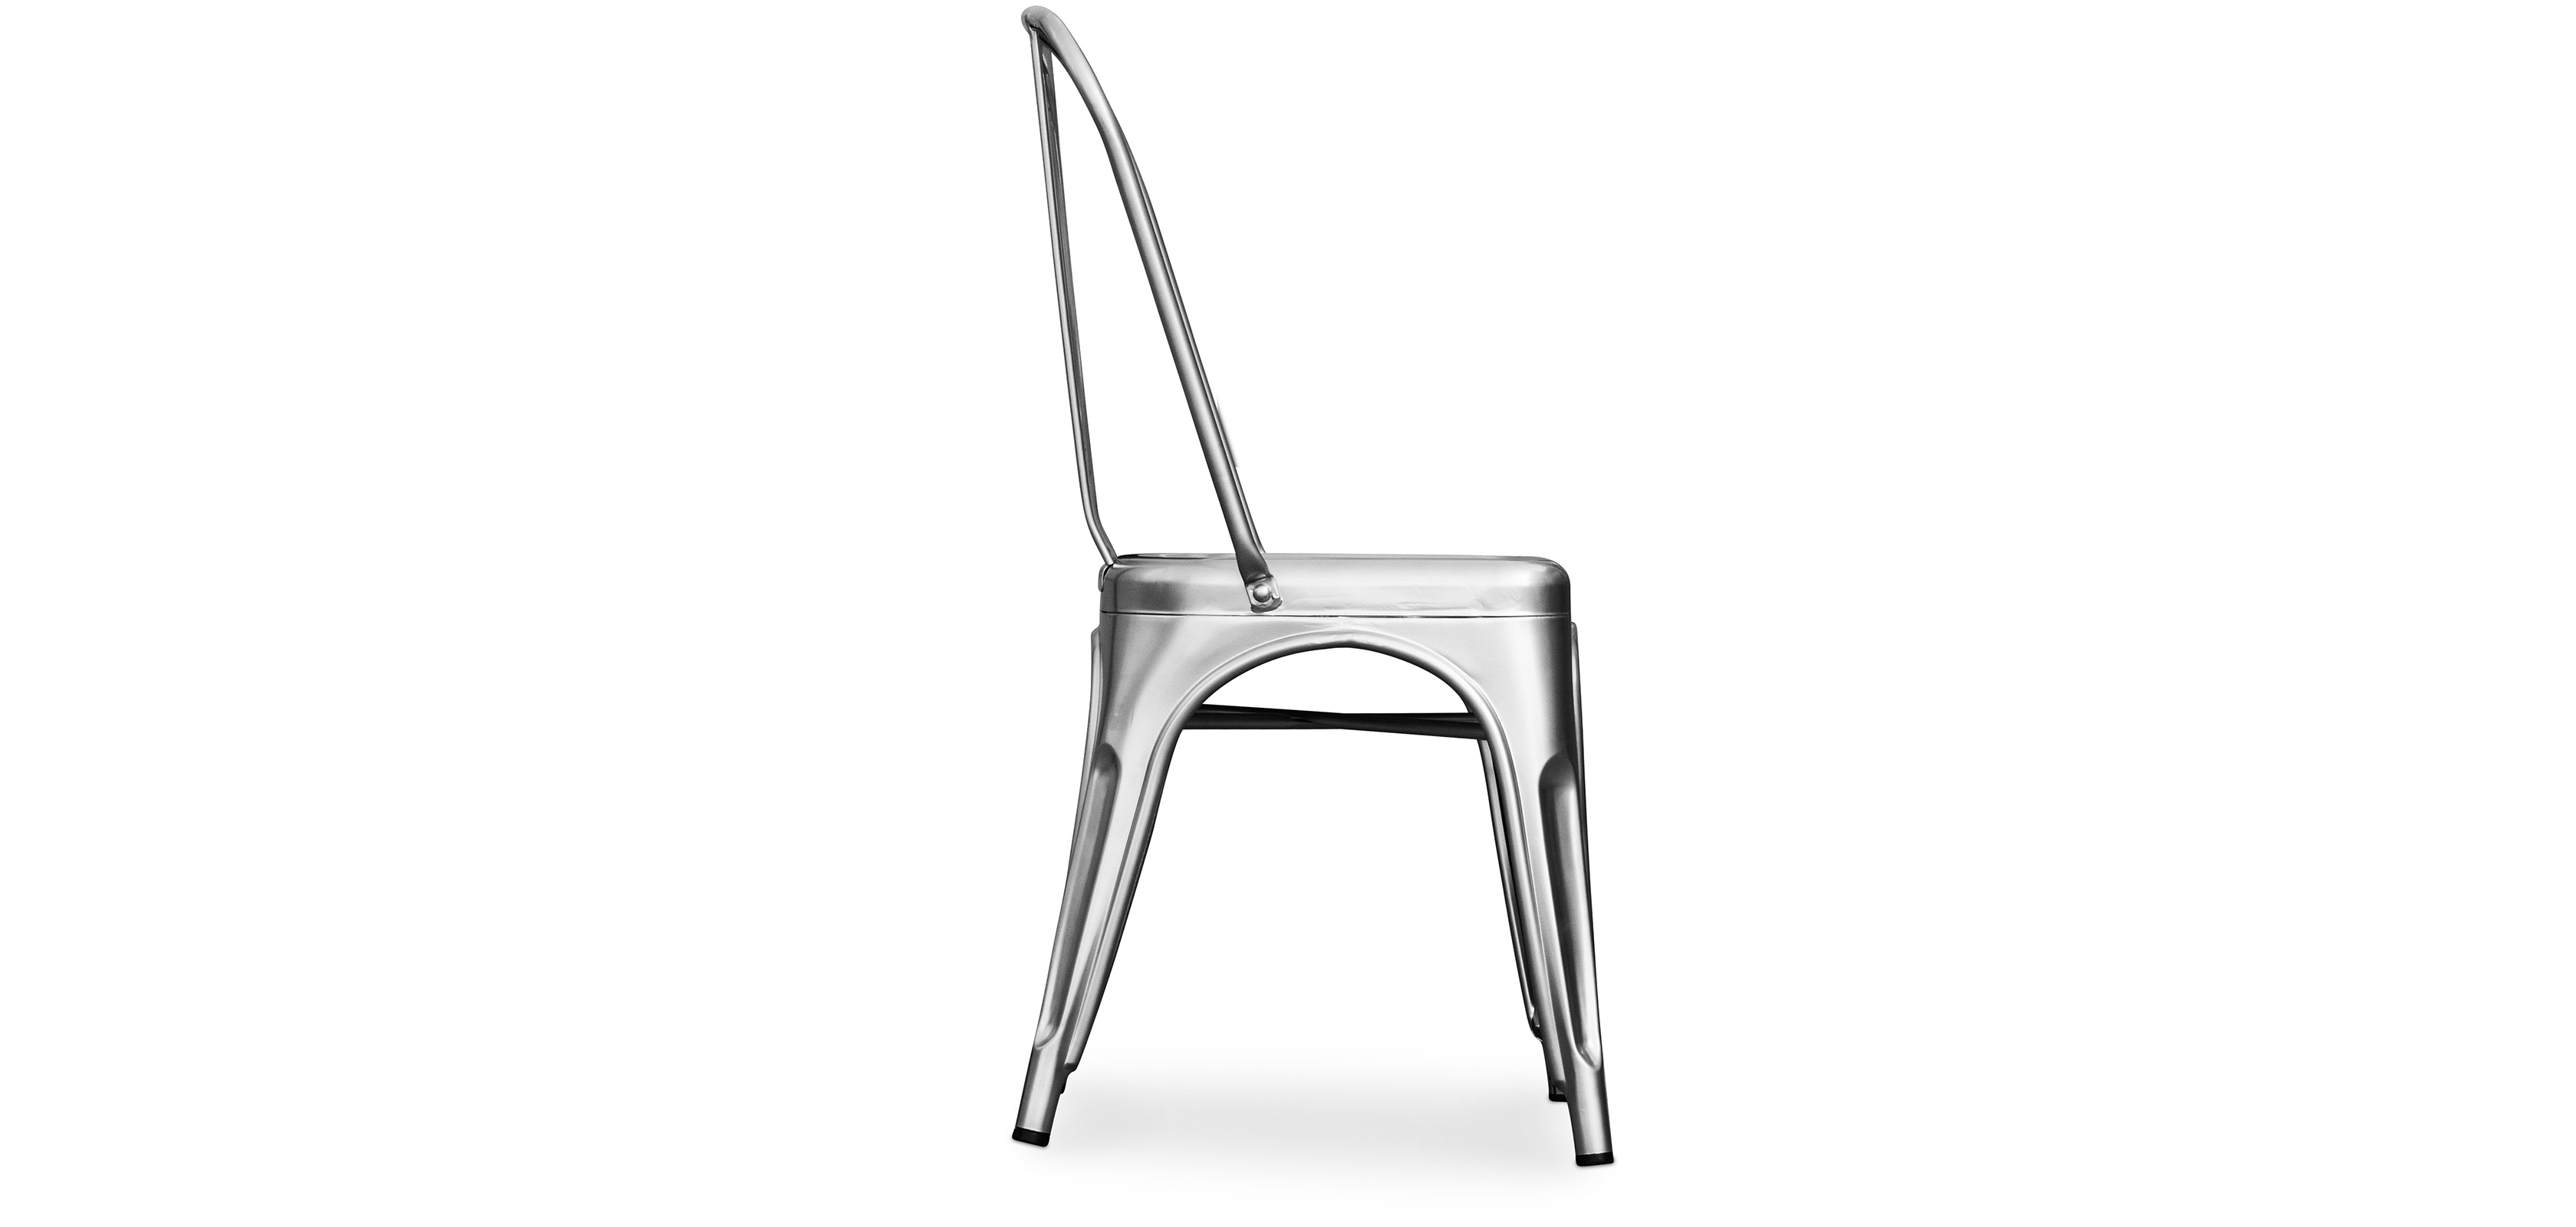 products chair dining xavier stool metal steel kitchen tolix di chairs replica cafe industrial bar home pauchard x